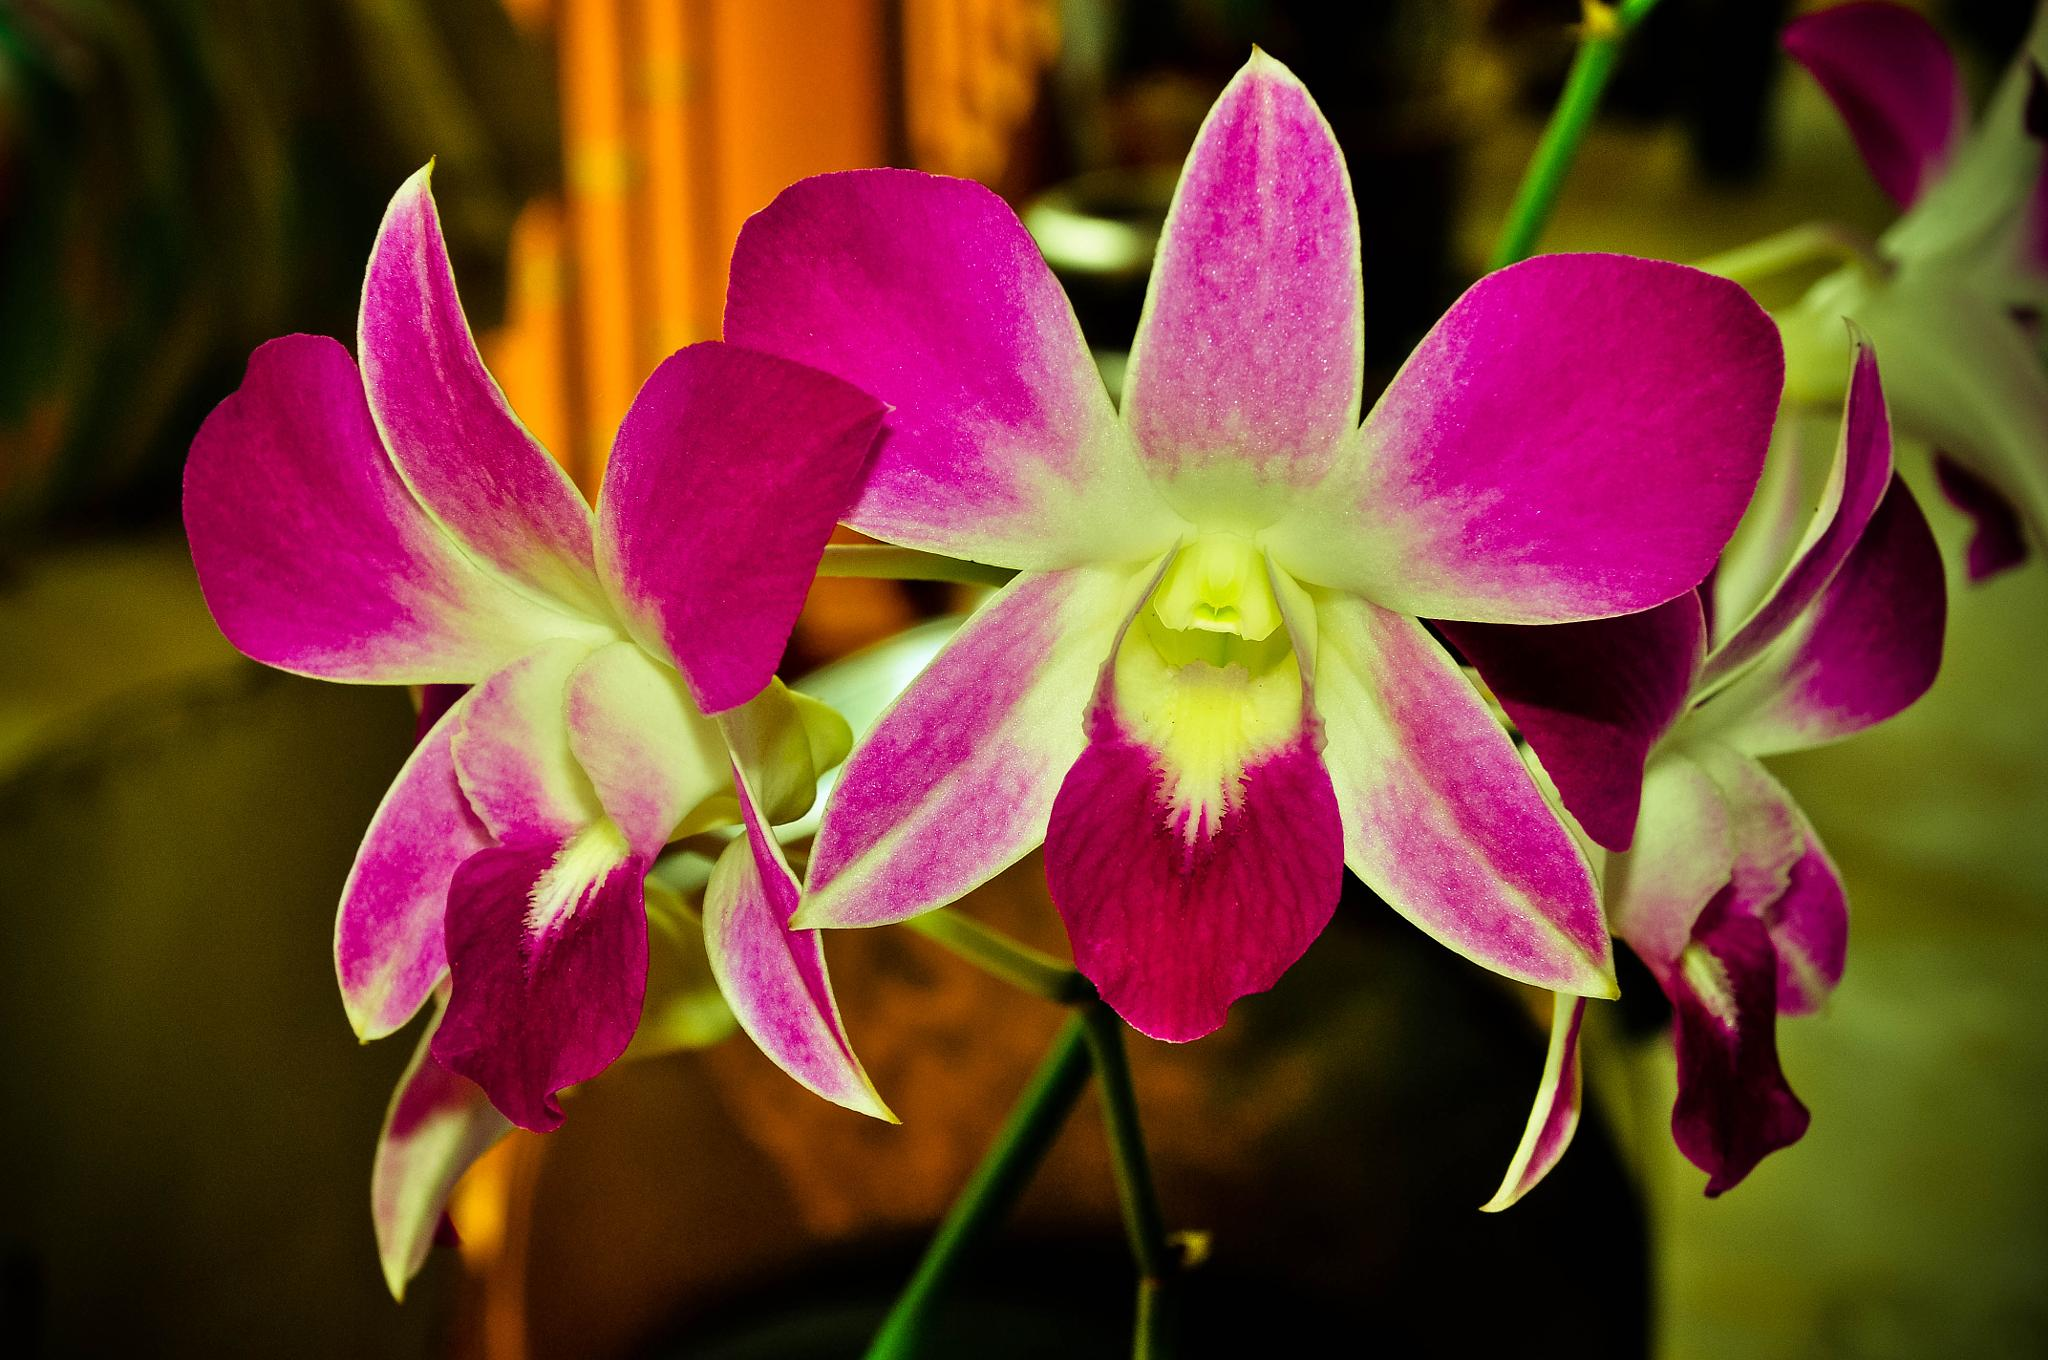 Malaysia Orchid Flower by Nor Ikhsan Ismail